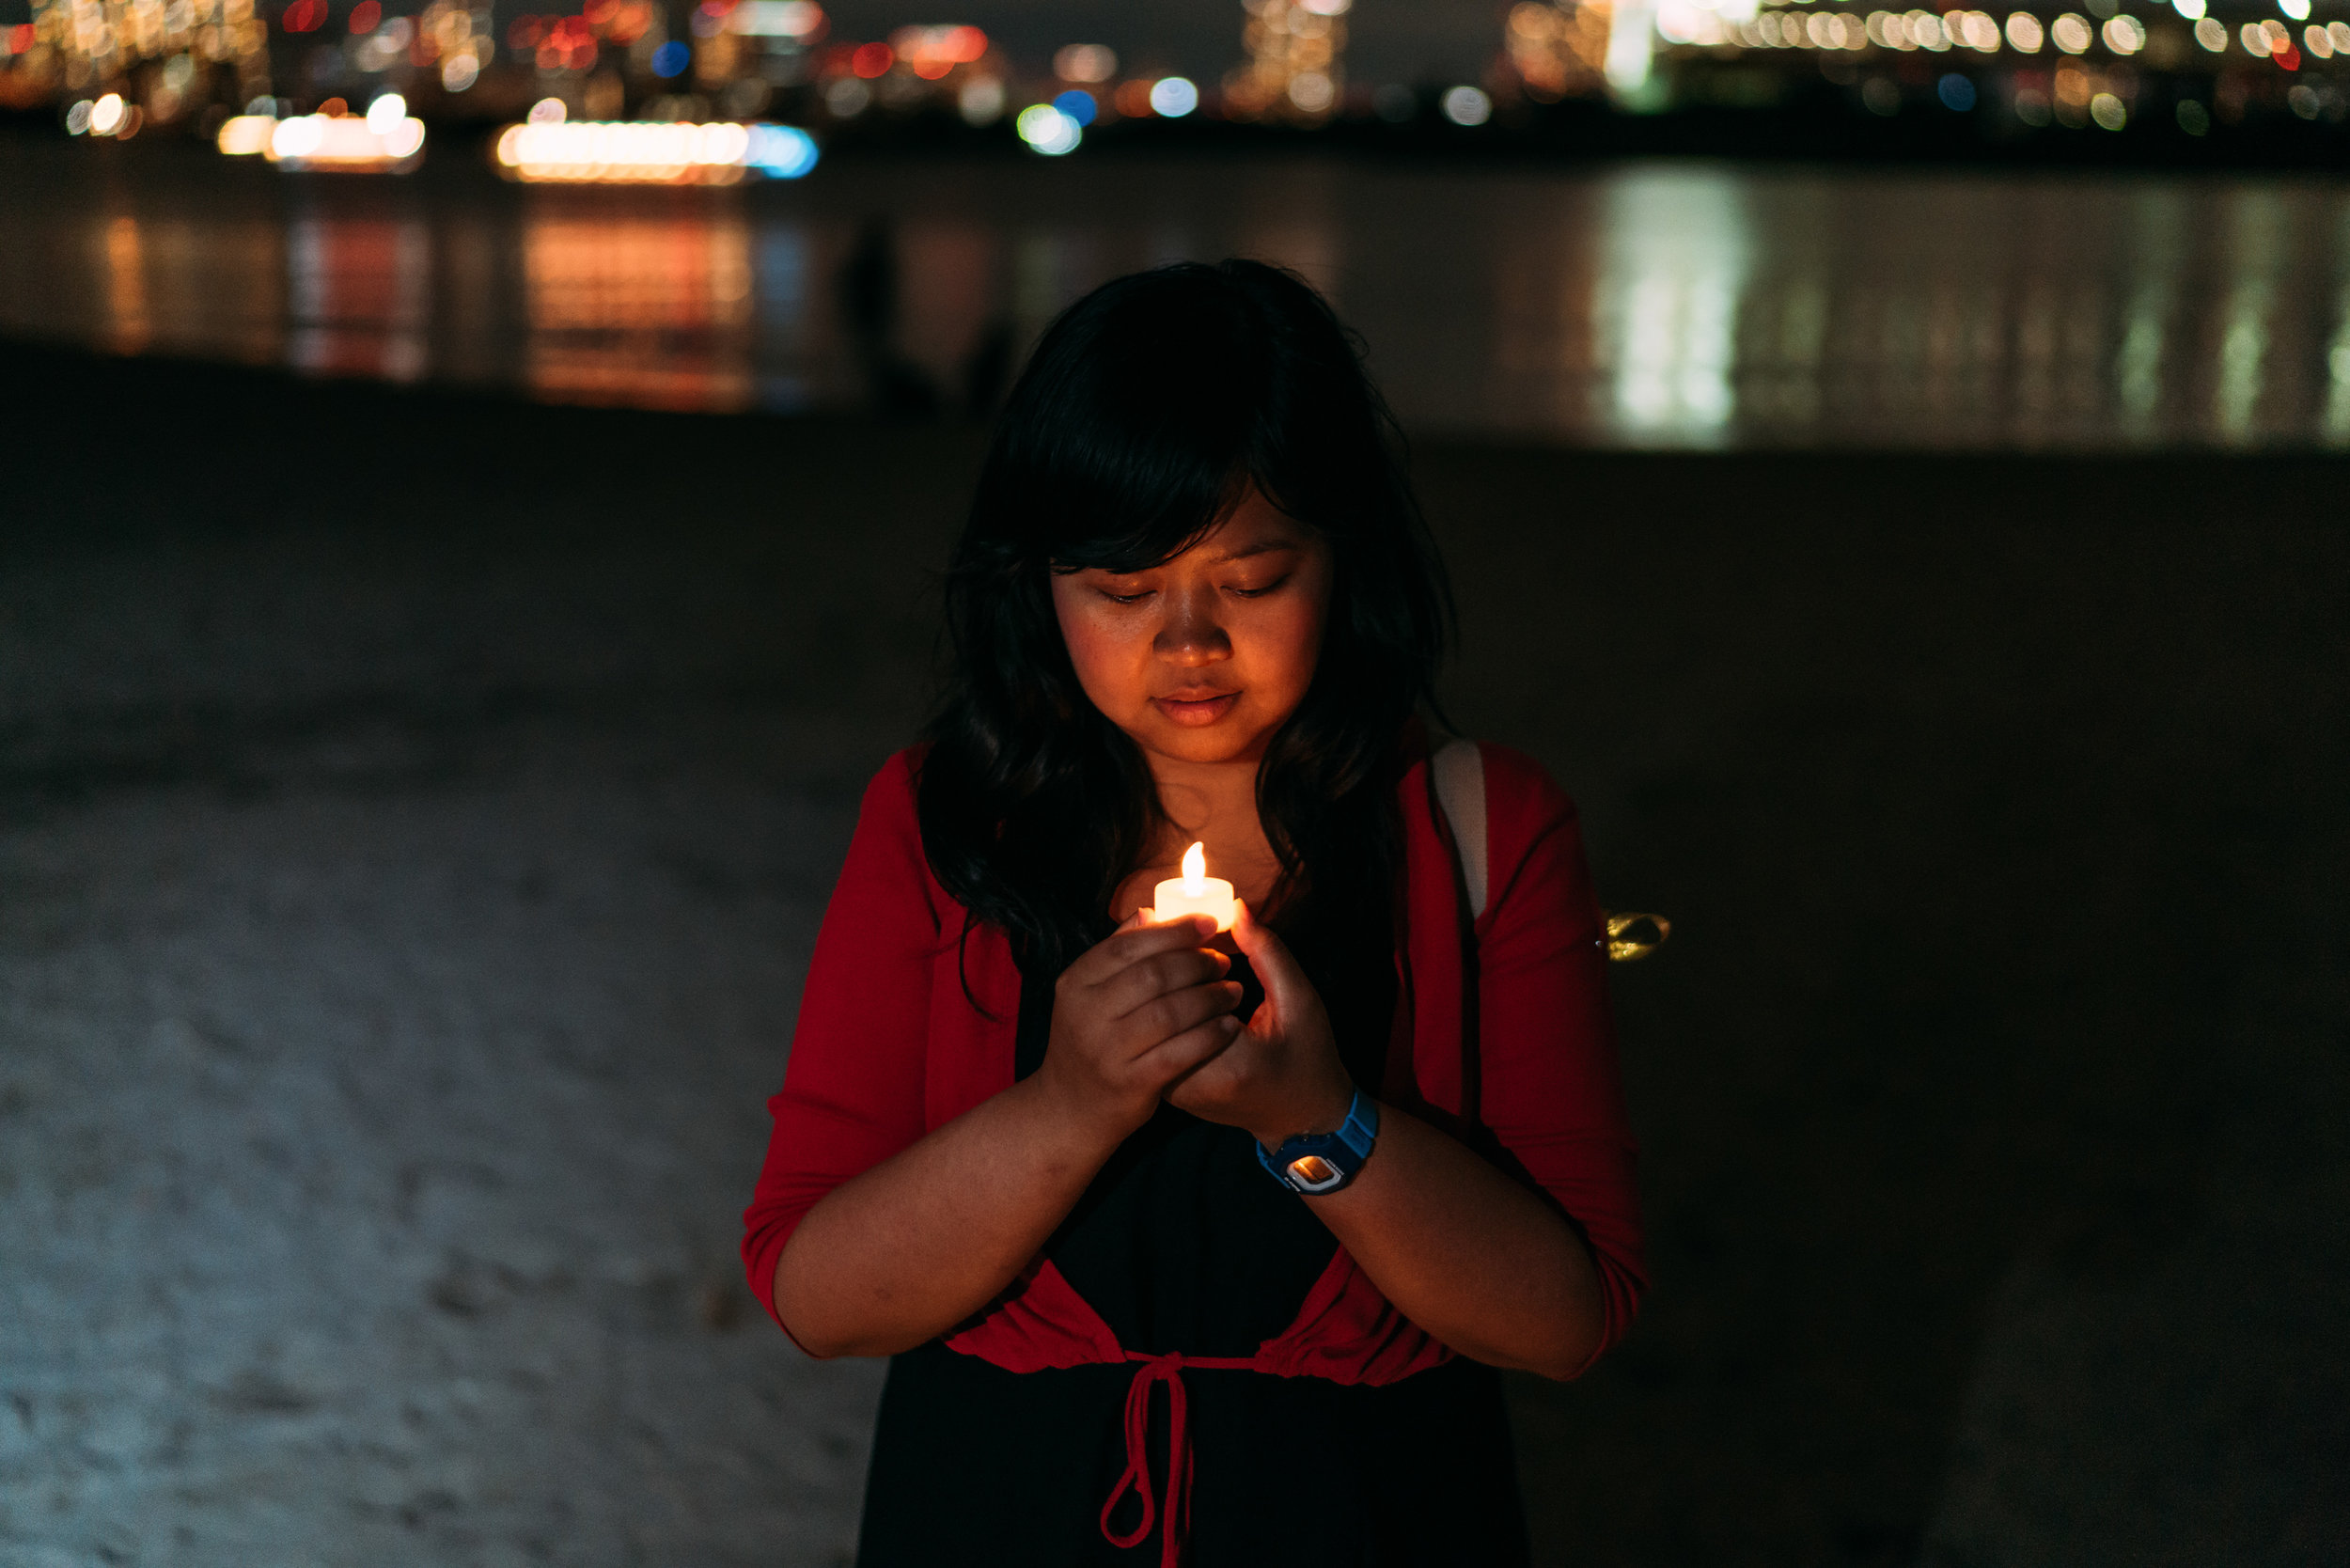 """""""We are differ in a religious beliefs but we are one nation, Indonesia"""" said Rosalina, a participant of 100 Candles From Japan to Indonesia"""